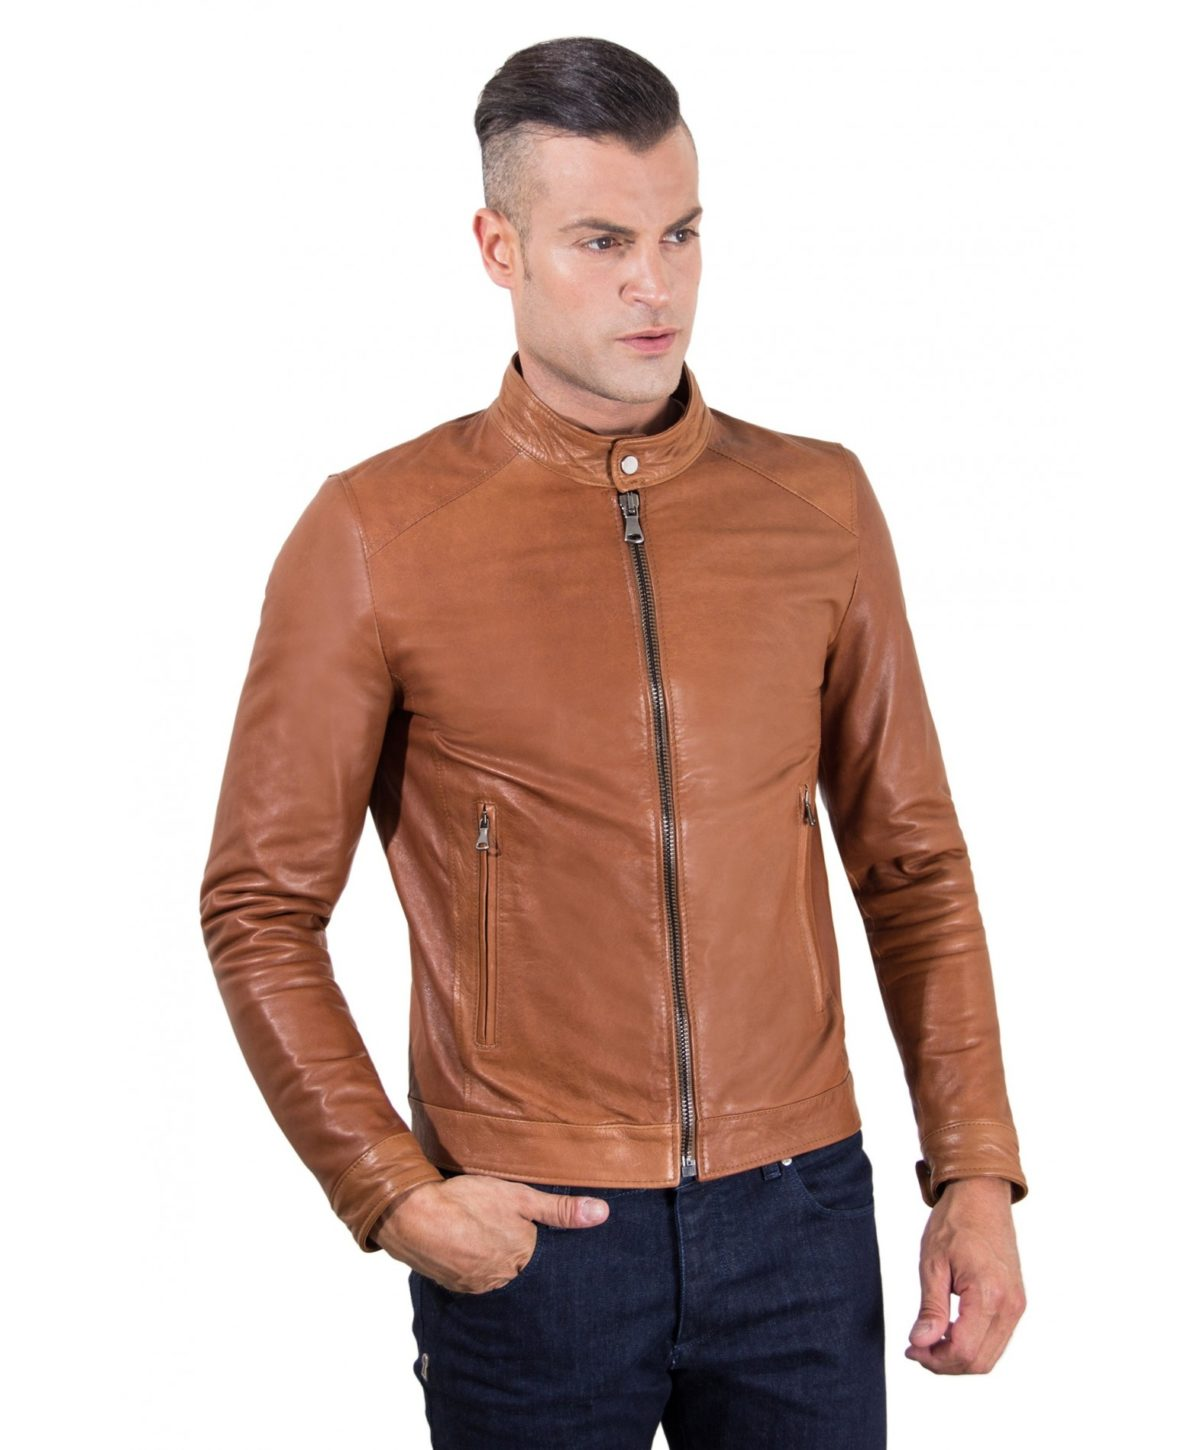 men-s-leather-jacket-korean-collar-two-pockets-tan-color-hamilton